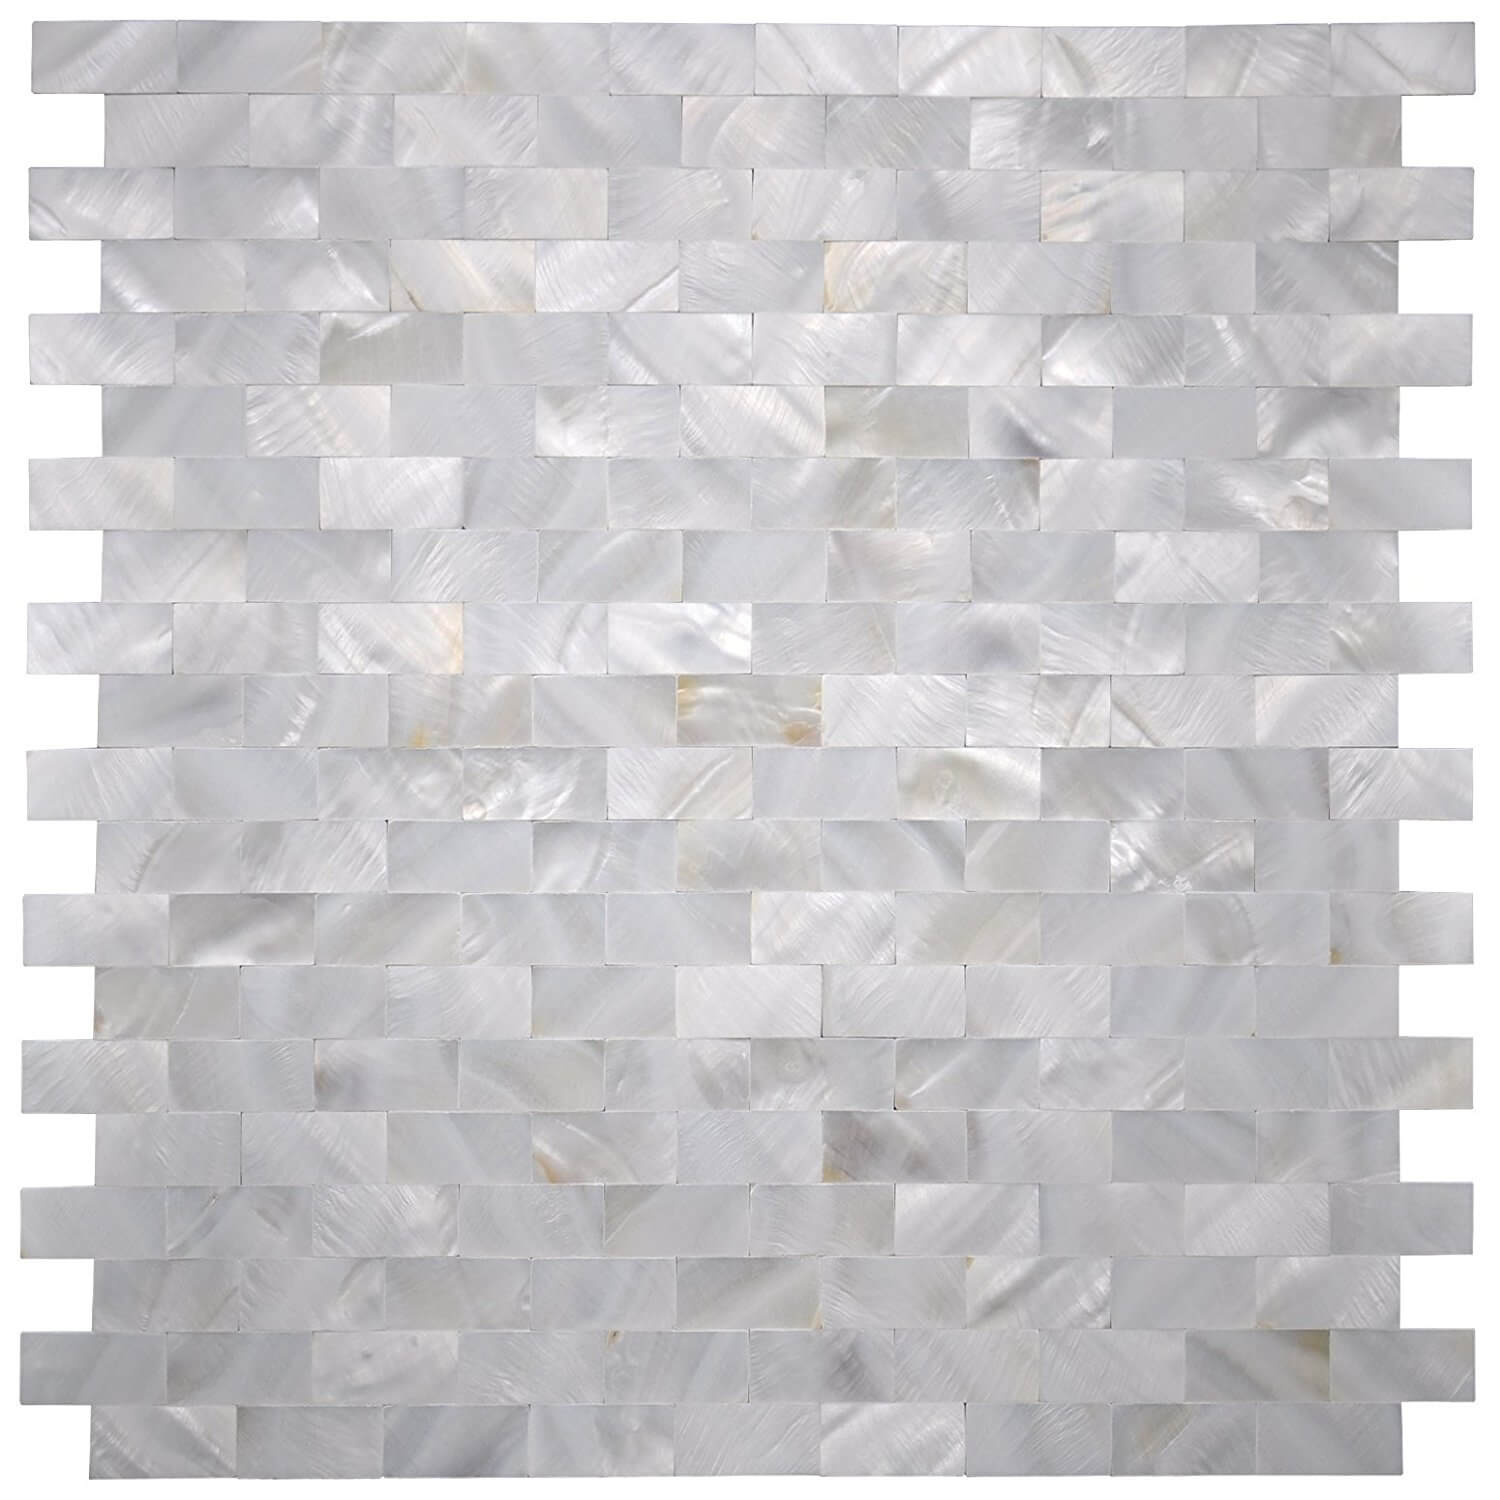 Mother of pearl tile for kitchen backsplash 12x12 subway white dailygadgetfo Image collections